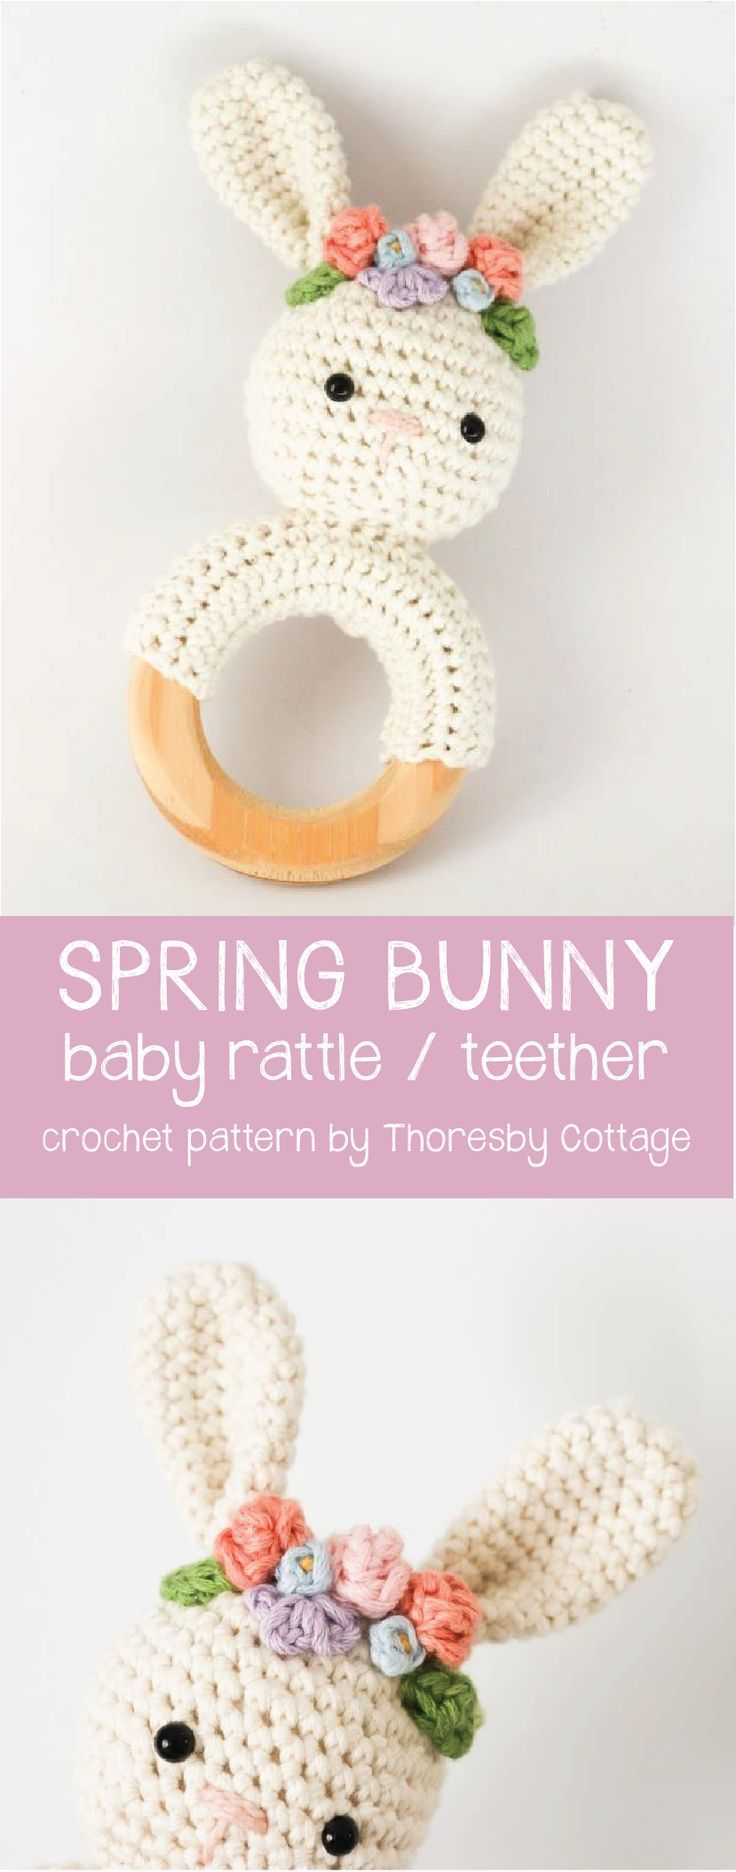 Spring bunny rattle crochet pattern | Bunny with flower crown